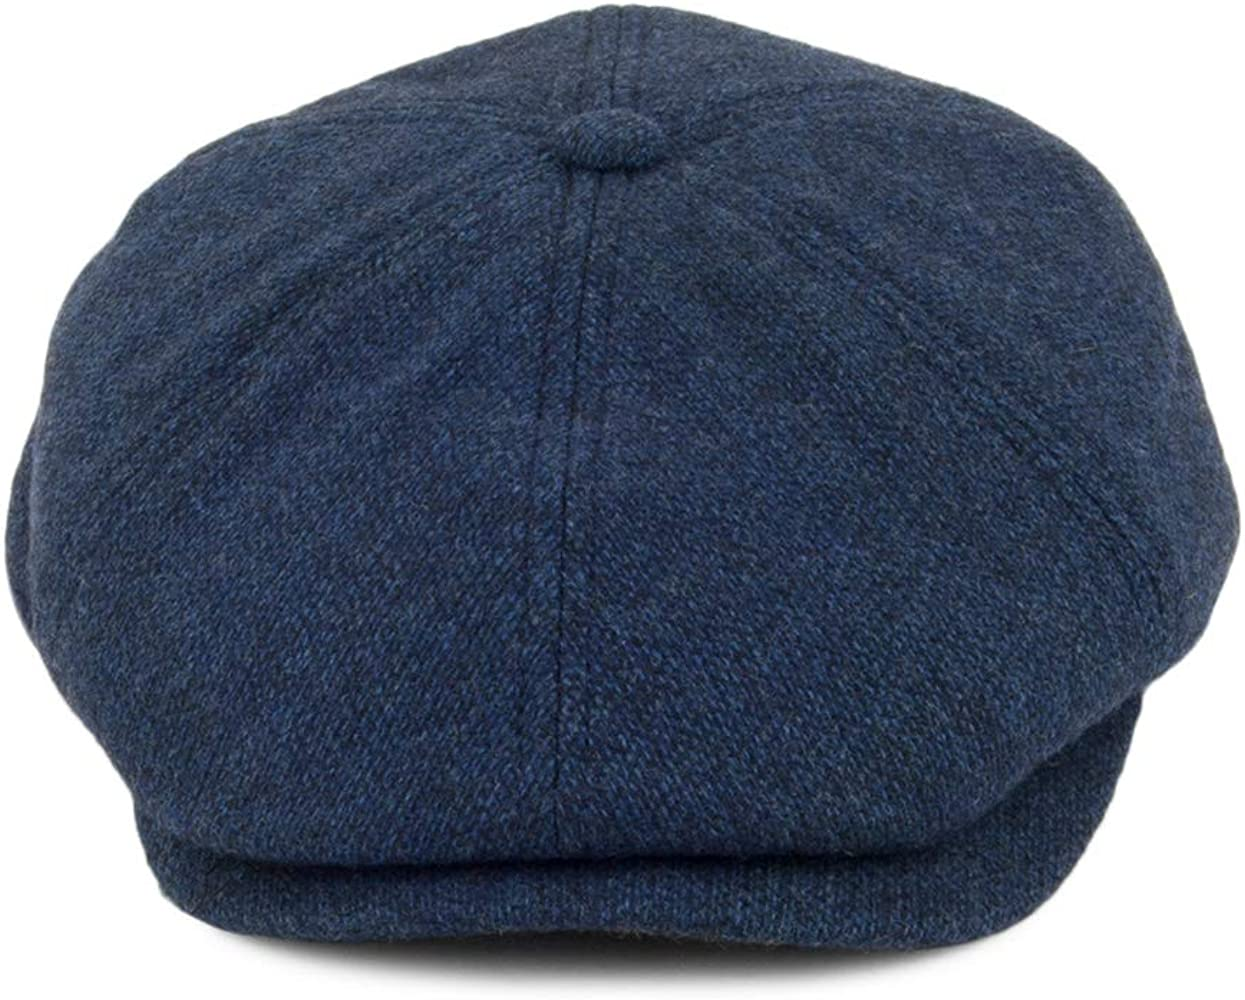 Failsworth Gorra Newsboy Hudson de Lana Inglesa Azul - 61: Amazon ...